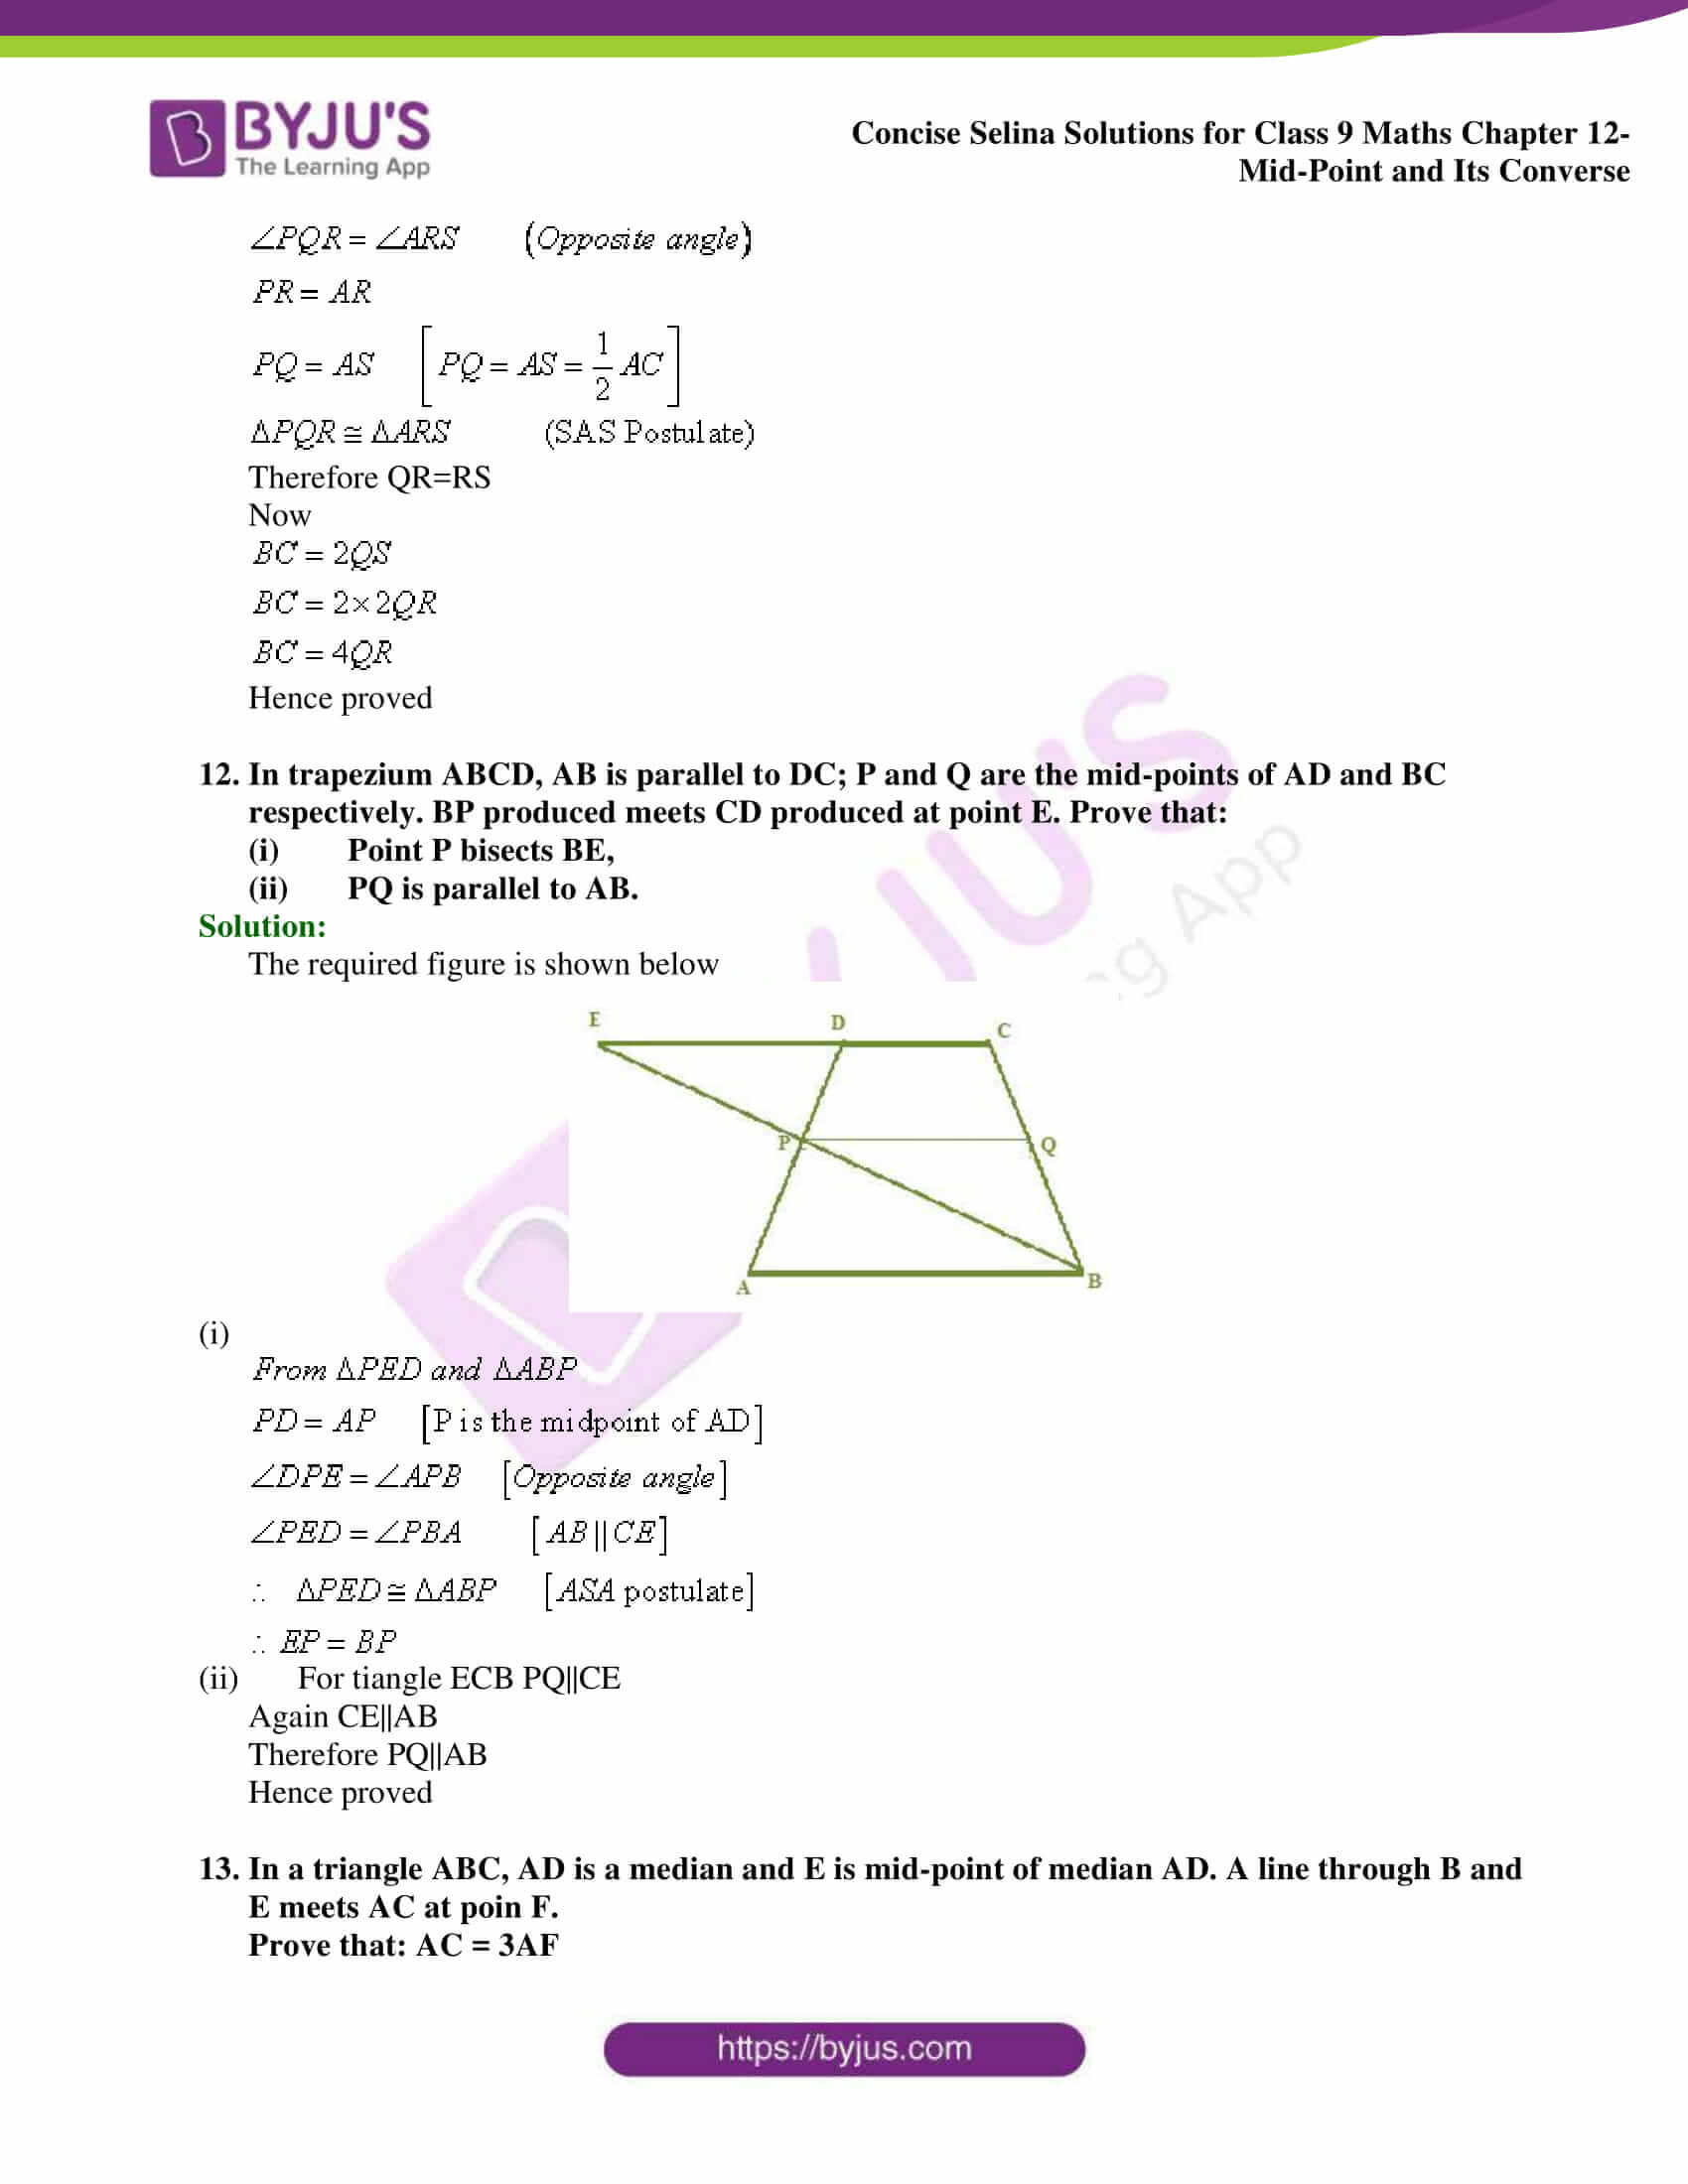 selina Solutions for Class 9 Maths Chapter 12 part 08